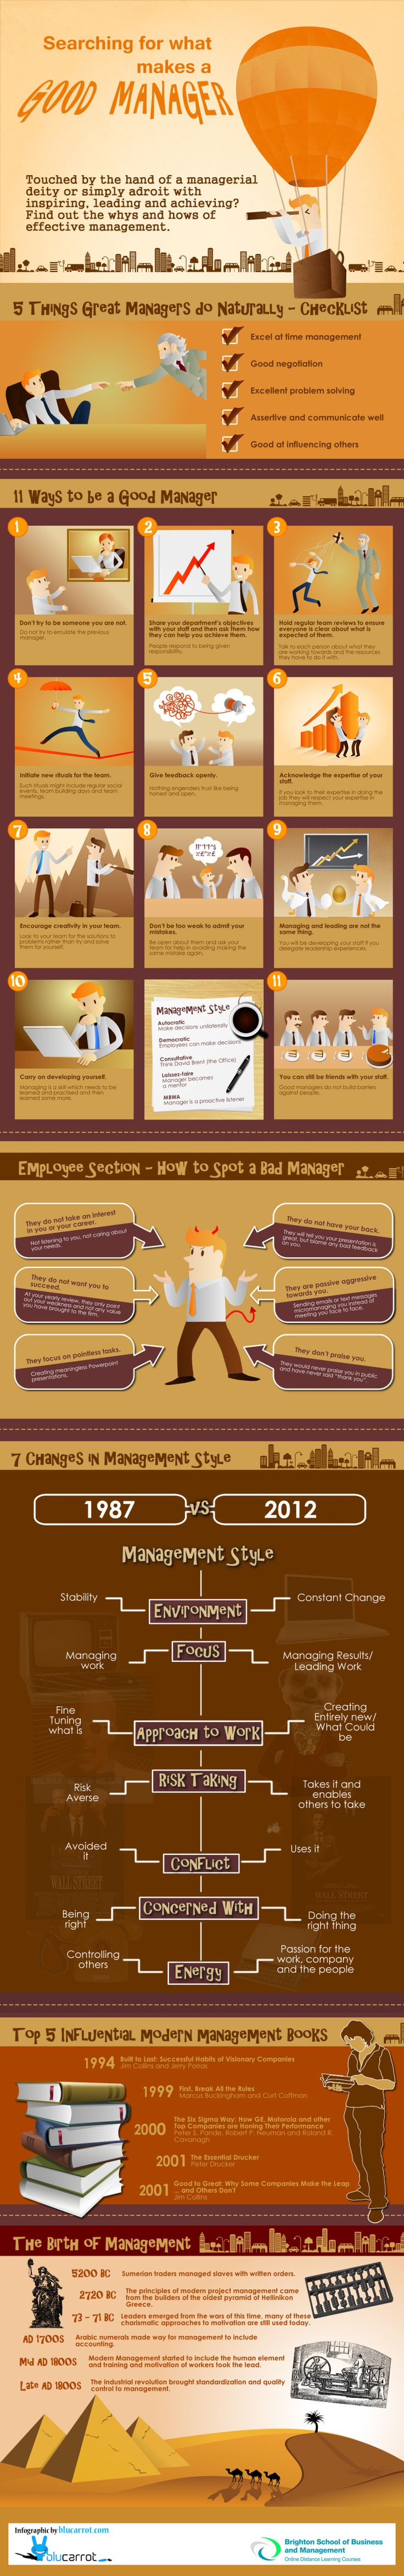 How to Be a Great Manager [INFOGRAPHIC] http://theundercoverrecruiter.com/good-manager-infographic/ #careers